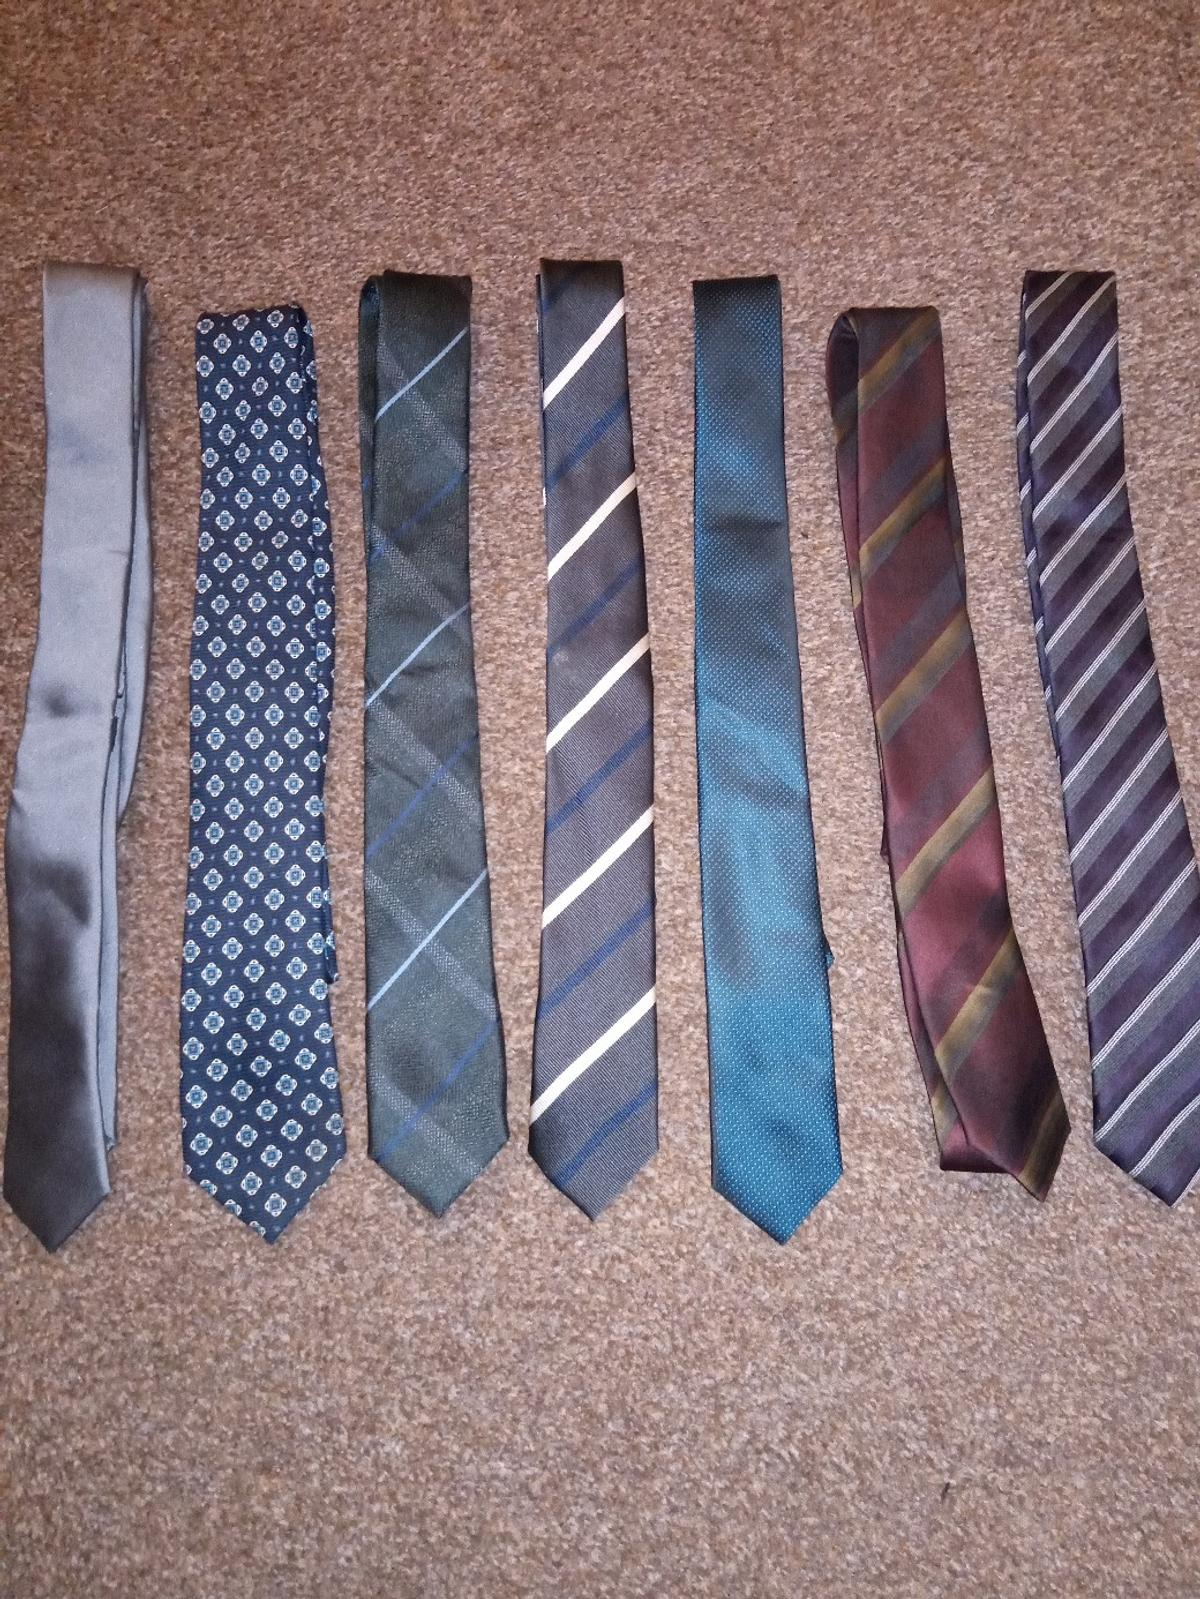 12 ties As seen in the pictures Ties from mainly next but include ventuno, f&f, Taylor and Wright.